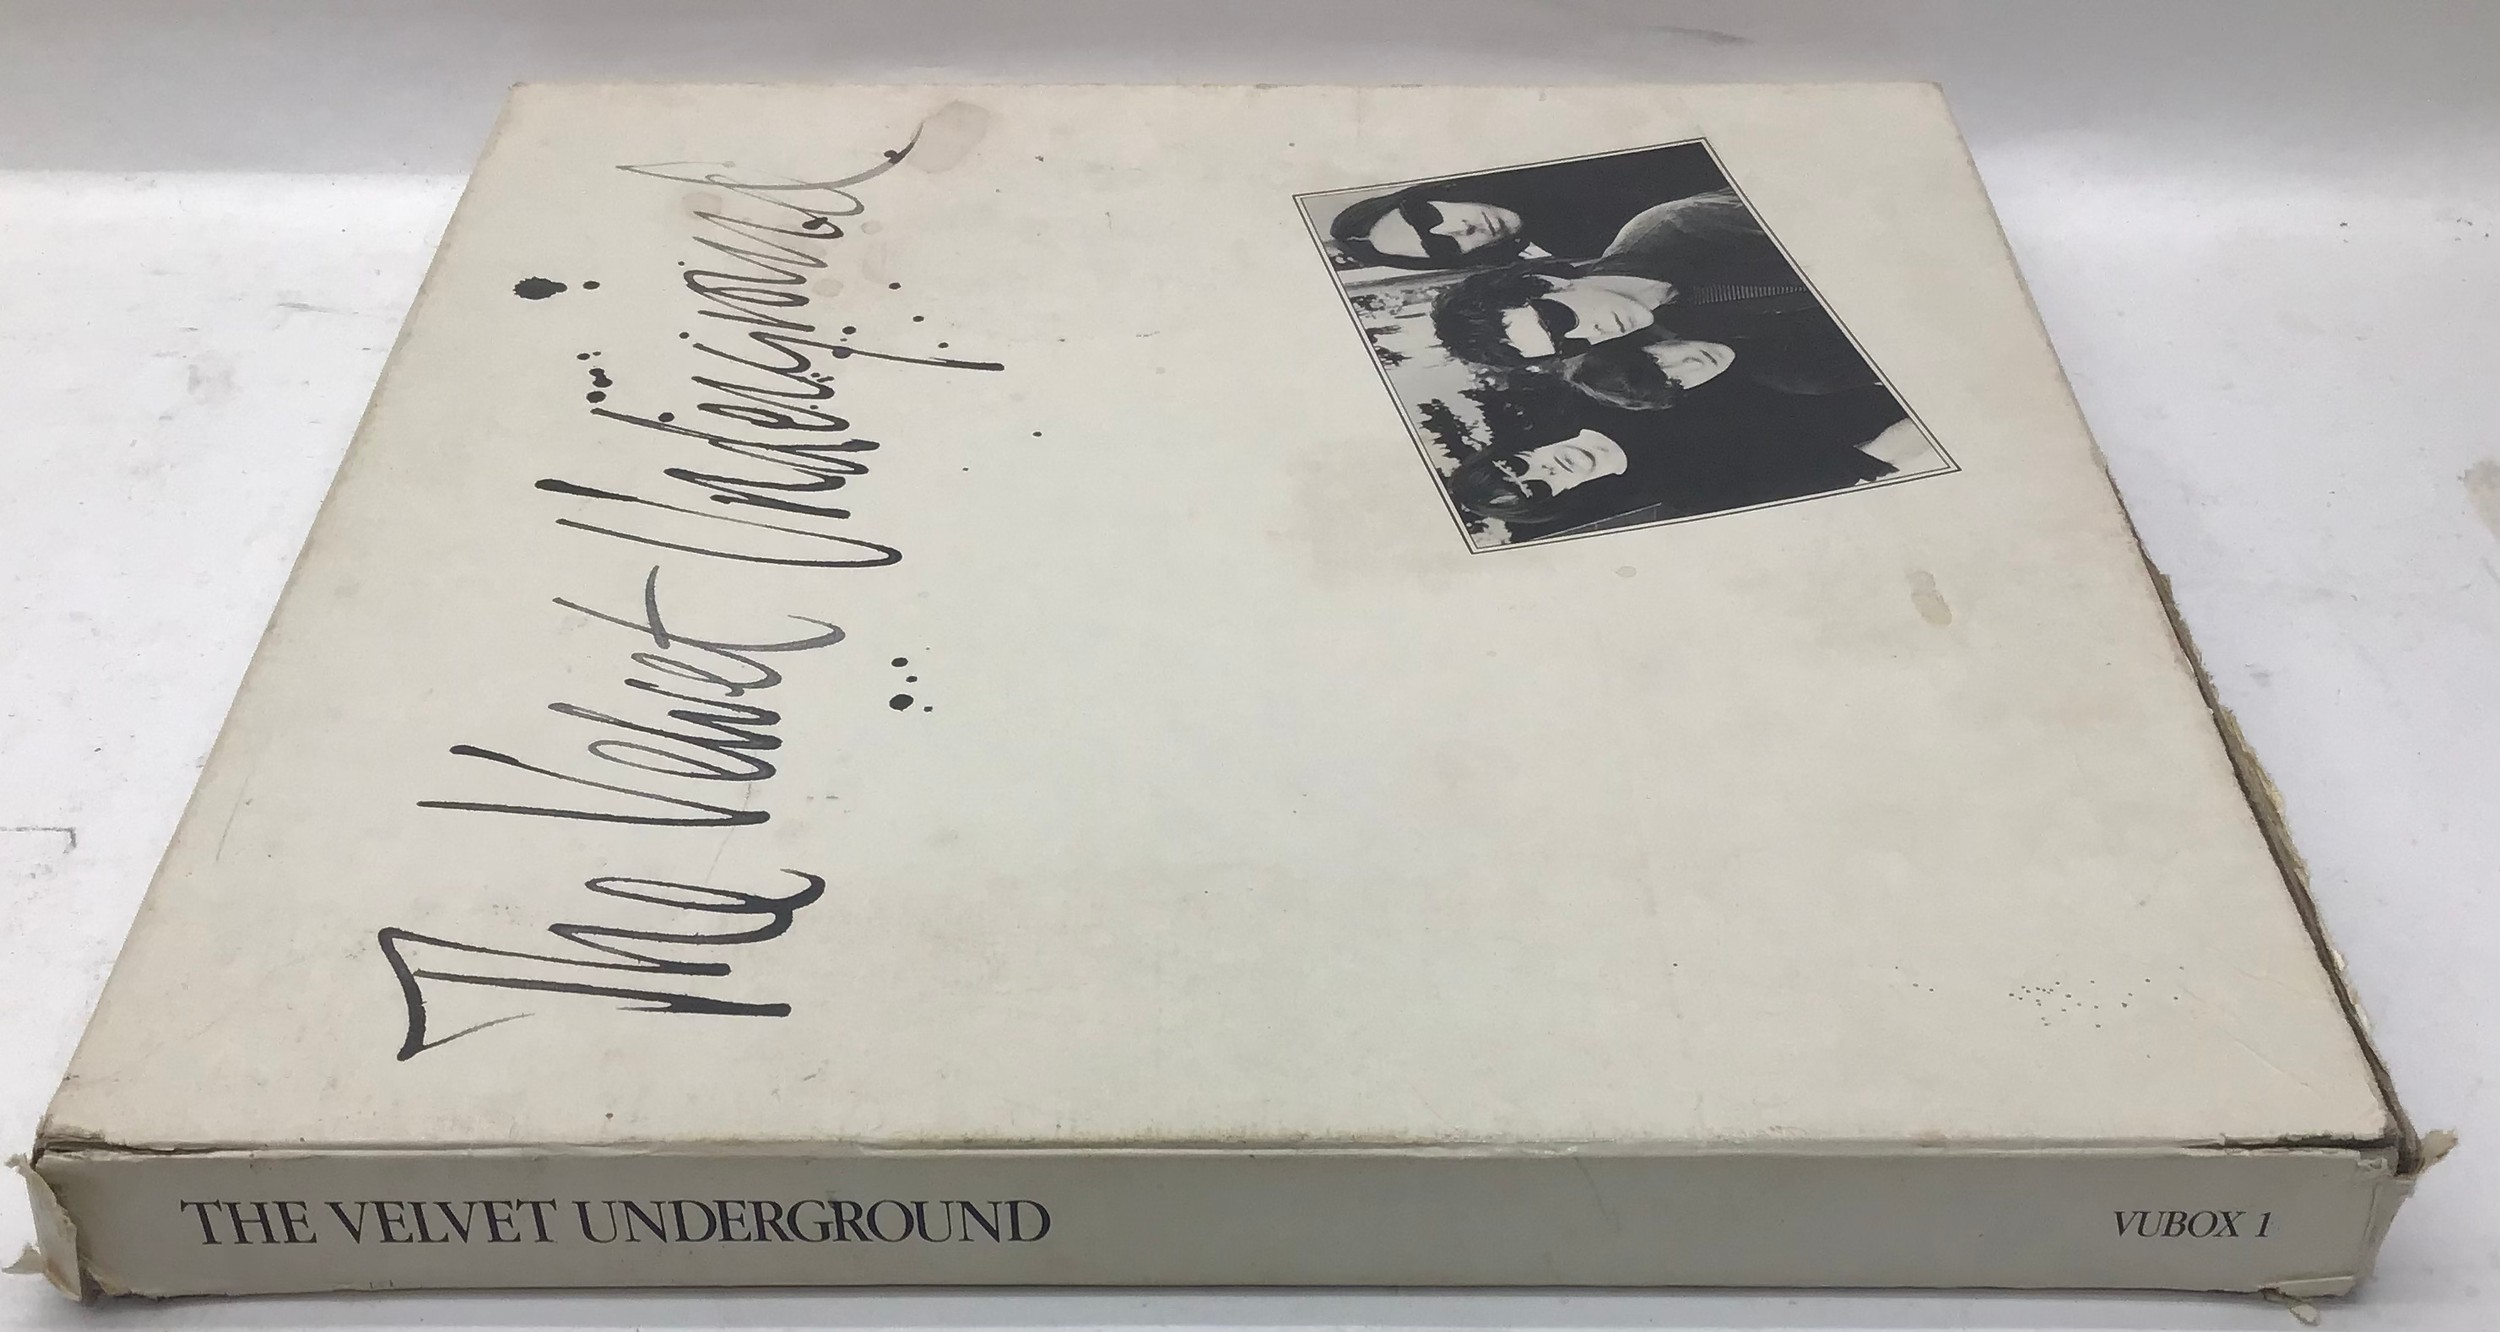 The Velvet Underground Vinyl 5 LP Box Set from 1986 complete with booklet and info sheet. Found here - Image 3 of 7